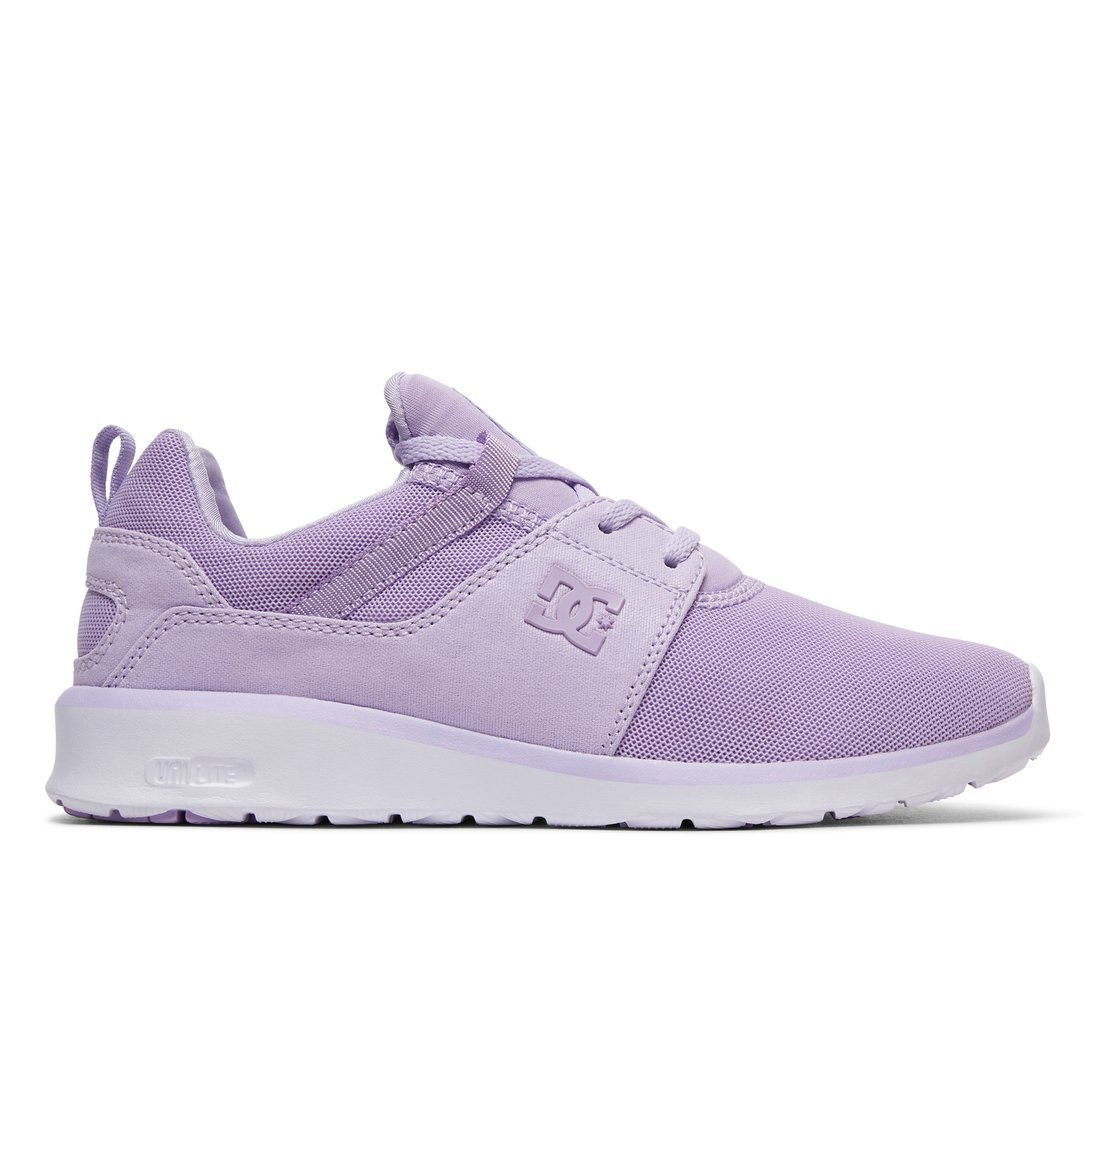 DC Shoes Basses Heathrow, Sneakers Basses Femme Violet Violet DC - Lilac a78f71d - avtodorozhniks.space